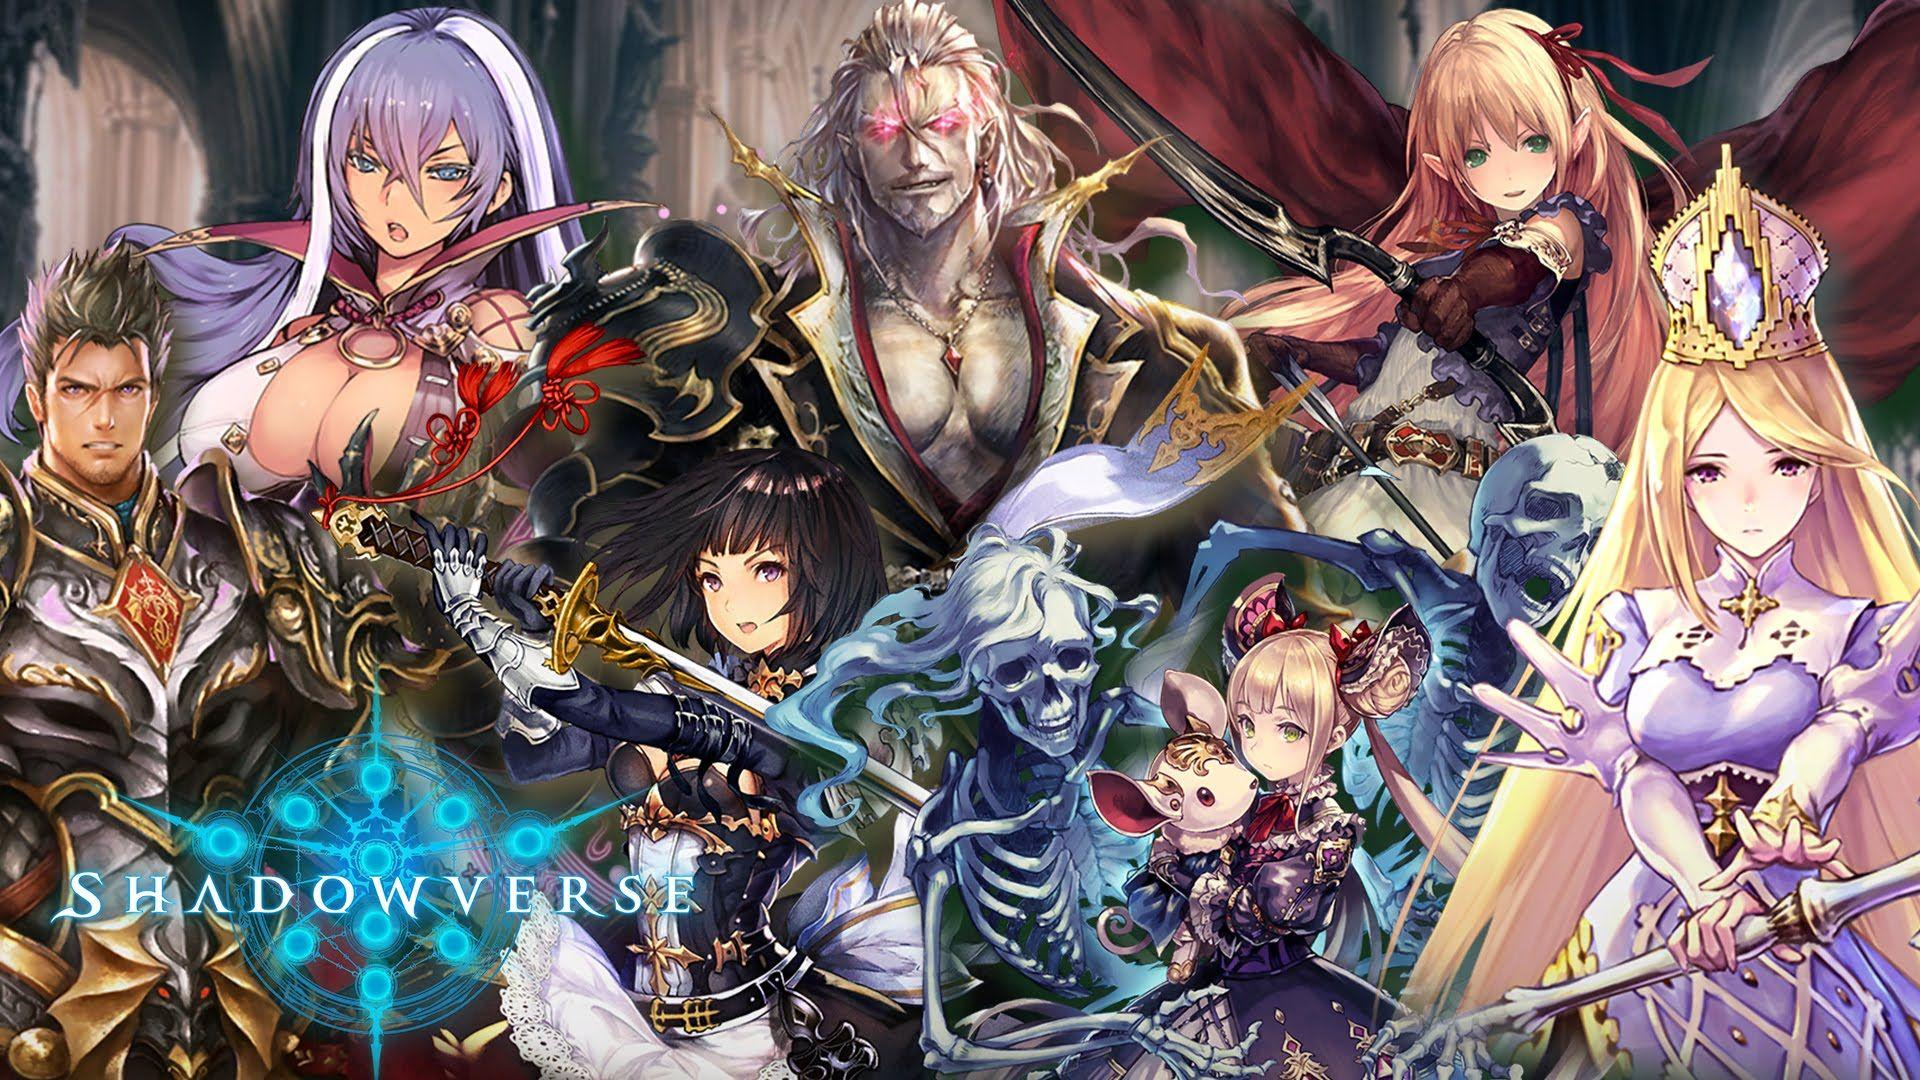 shadowverse-episode-29-release-date-preview-spoilers-updates